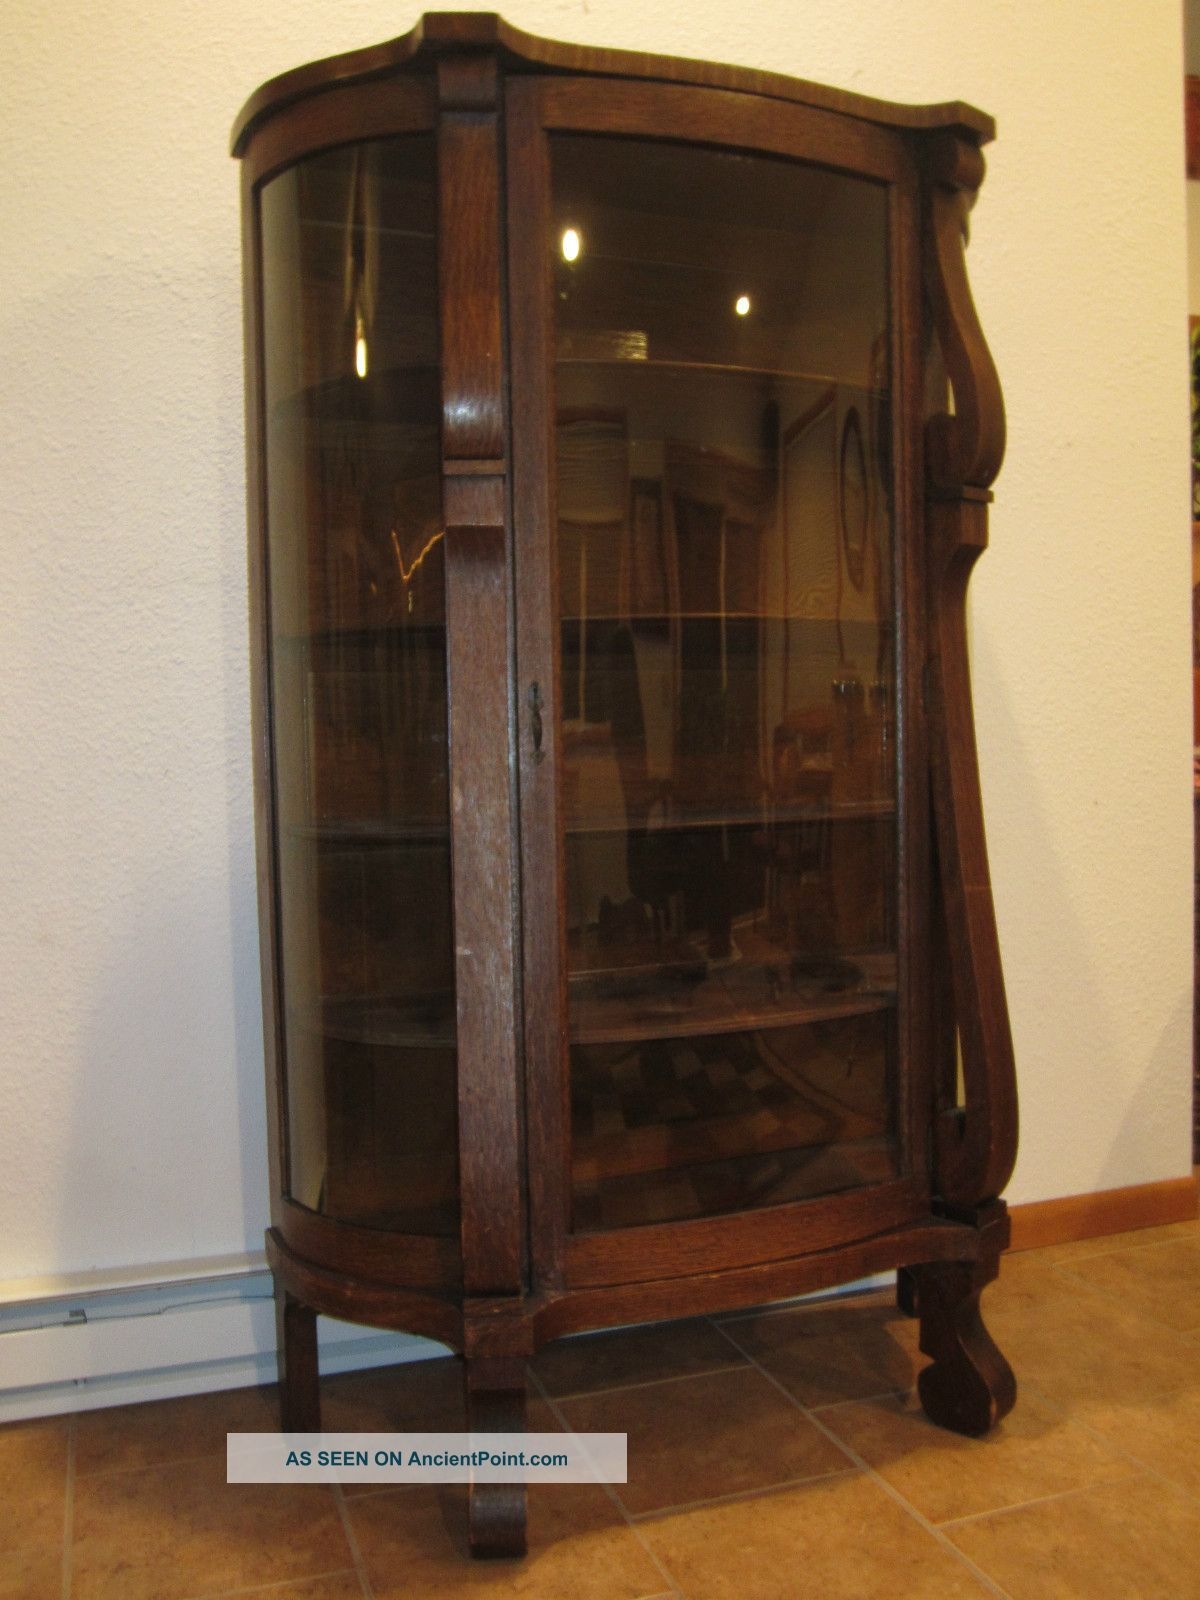 Ebert Furniture Co Antique Bowfront Oak China Curio Cabinet Glassware Display Cabinet Antique Cabinets Wood Display